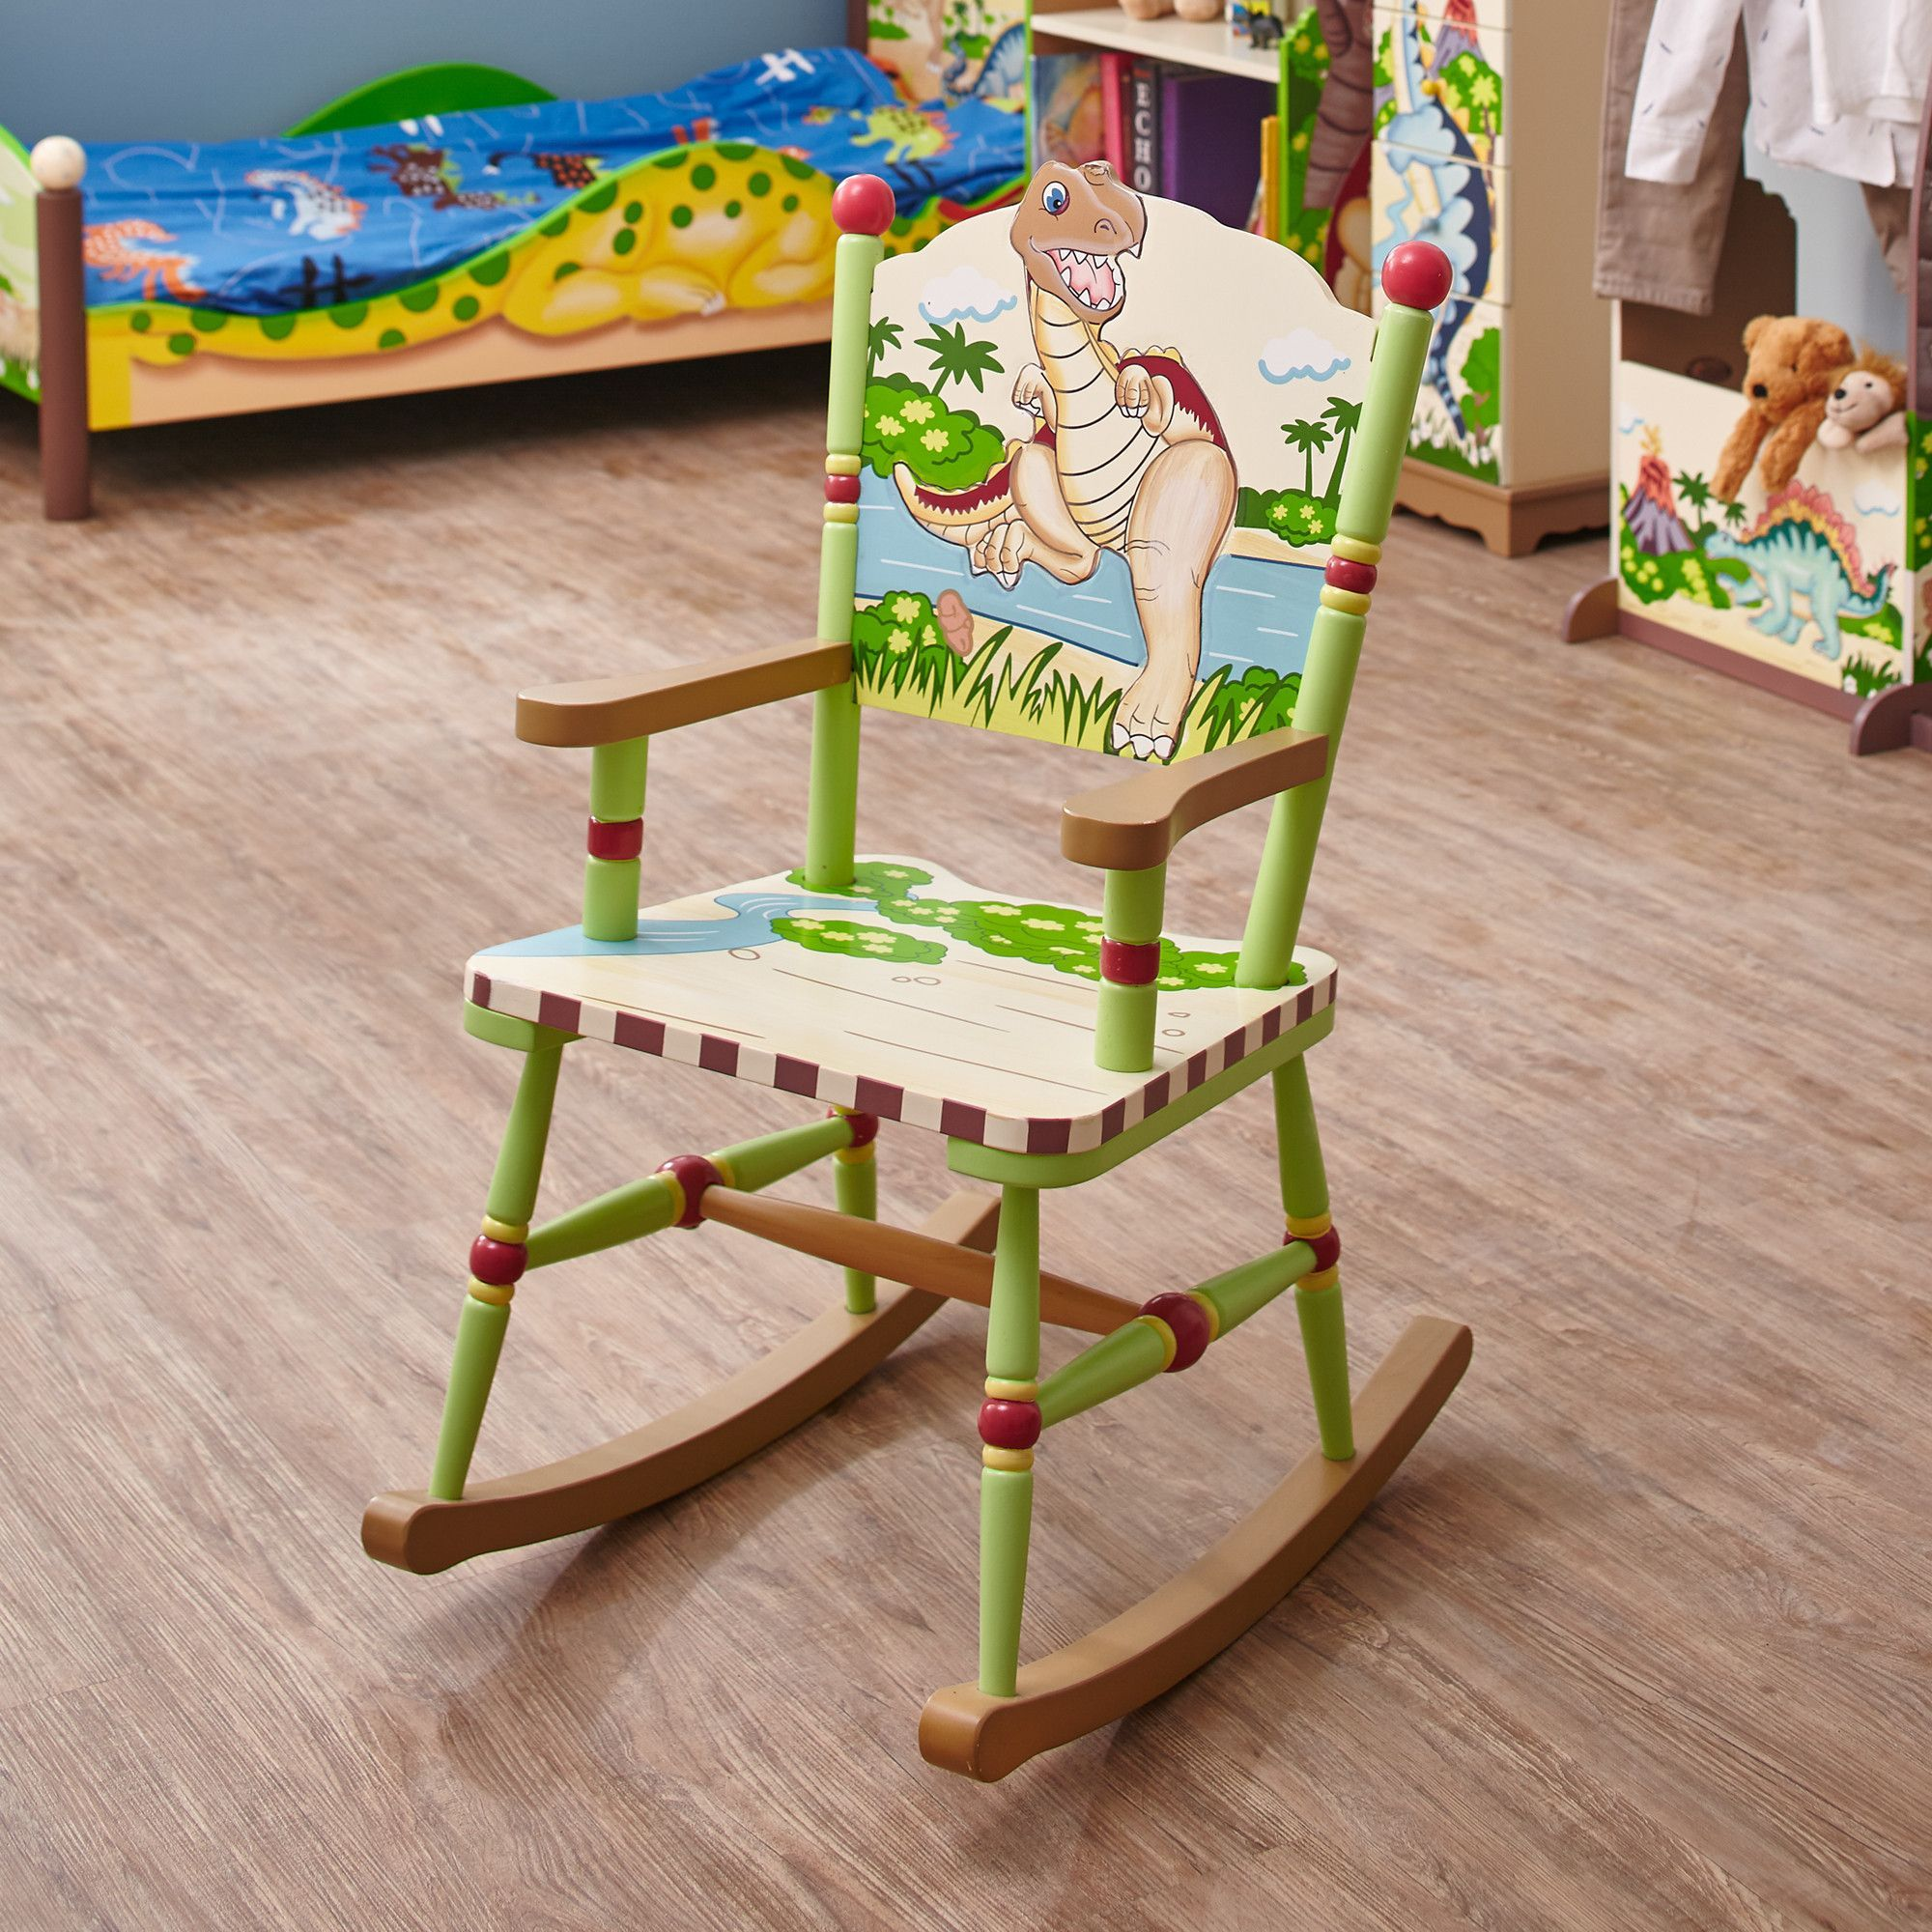 Awesome Now Your Little One Can Rock Out With Fantasy Fields Andrewgaddart Wooden Chair Designs For Living Room Andrewgaddartcom